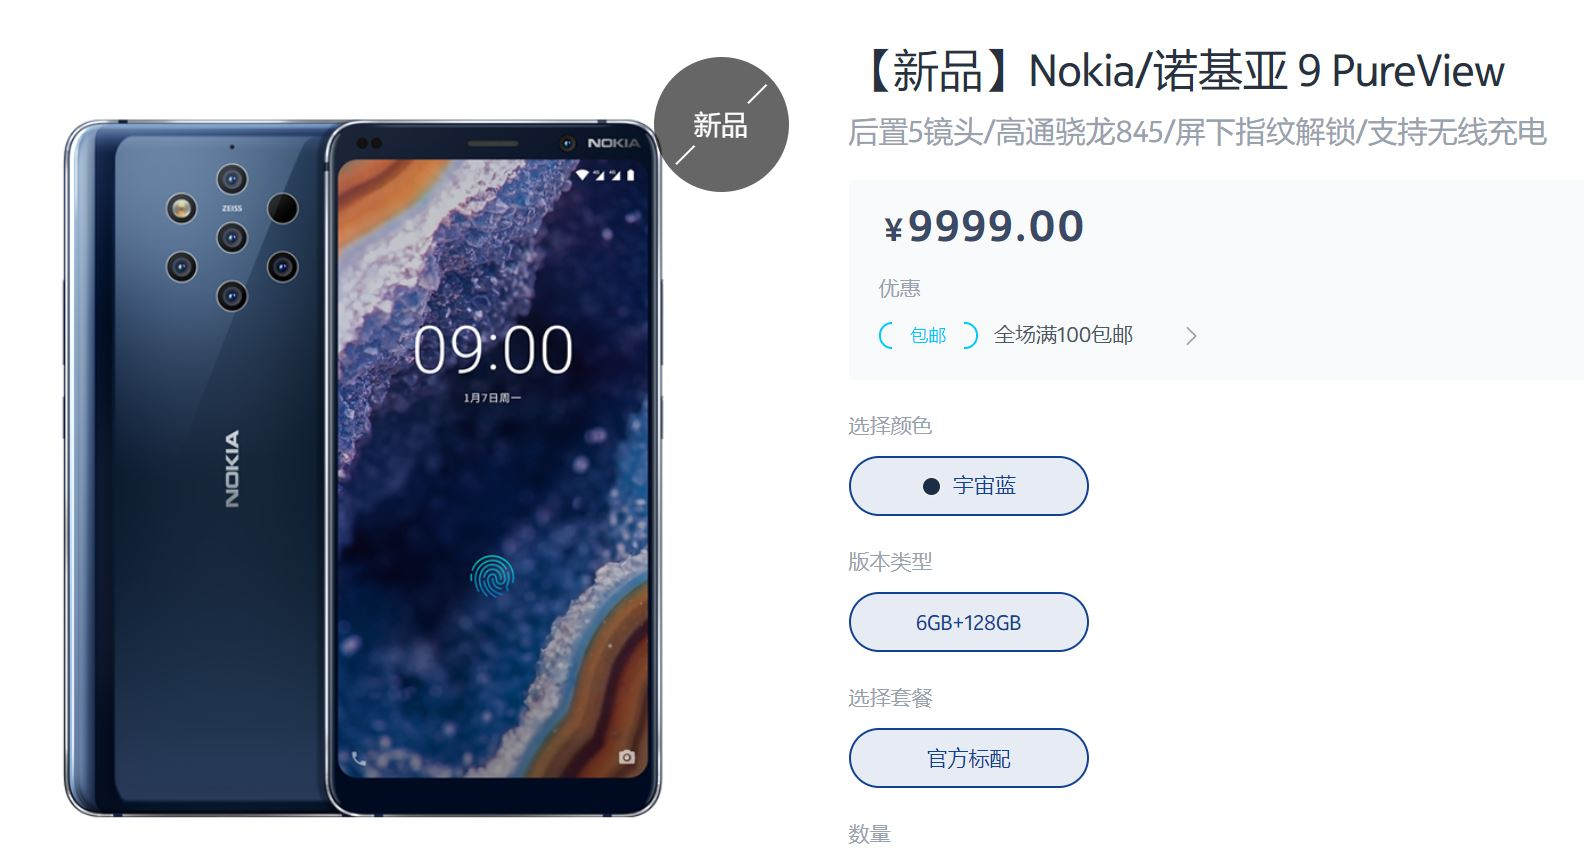 Nokia 9 PureView first stock due on March 21 in the UK